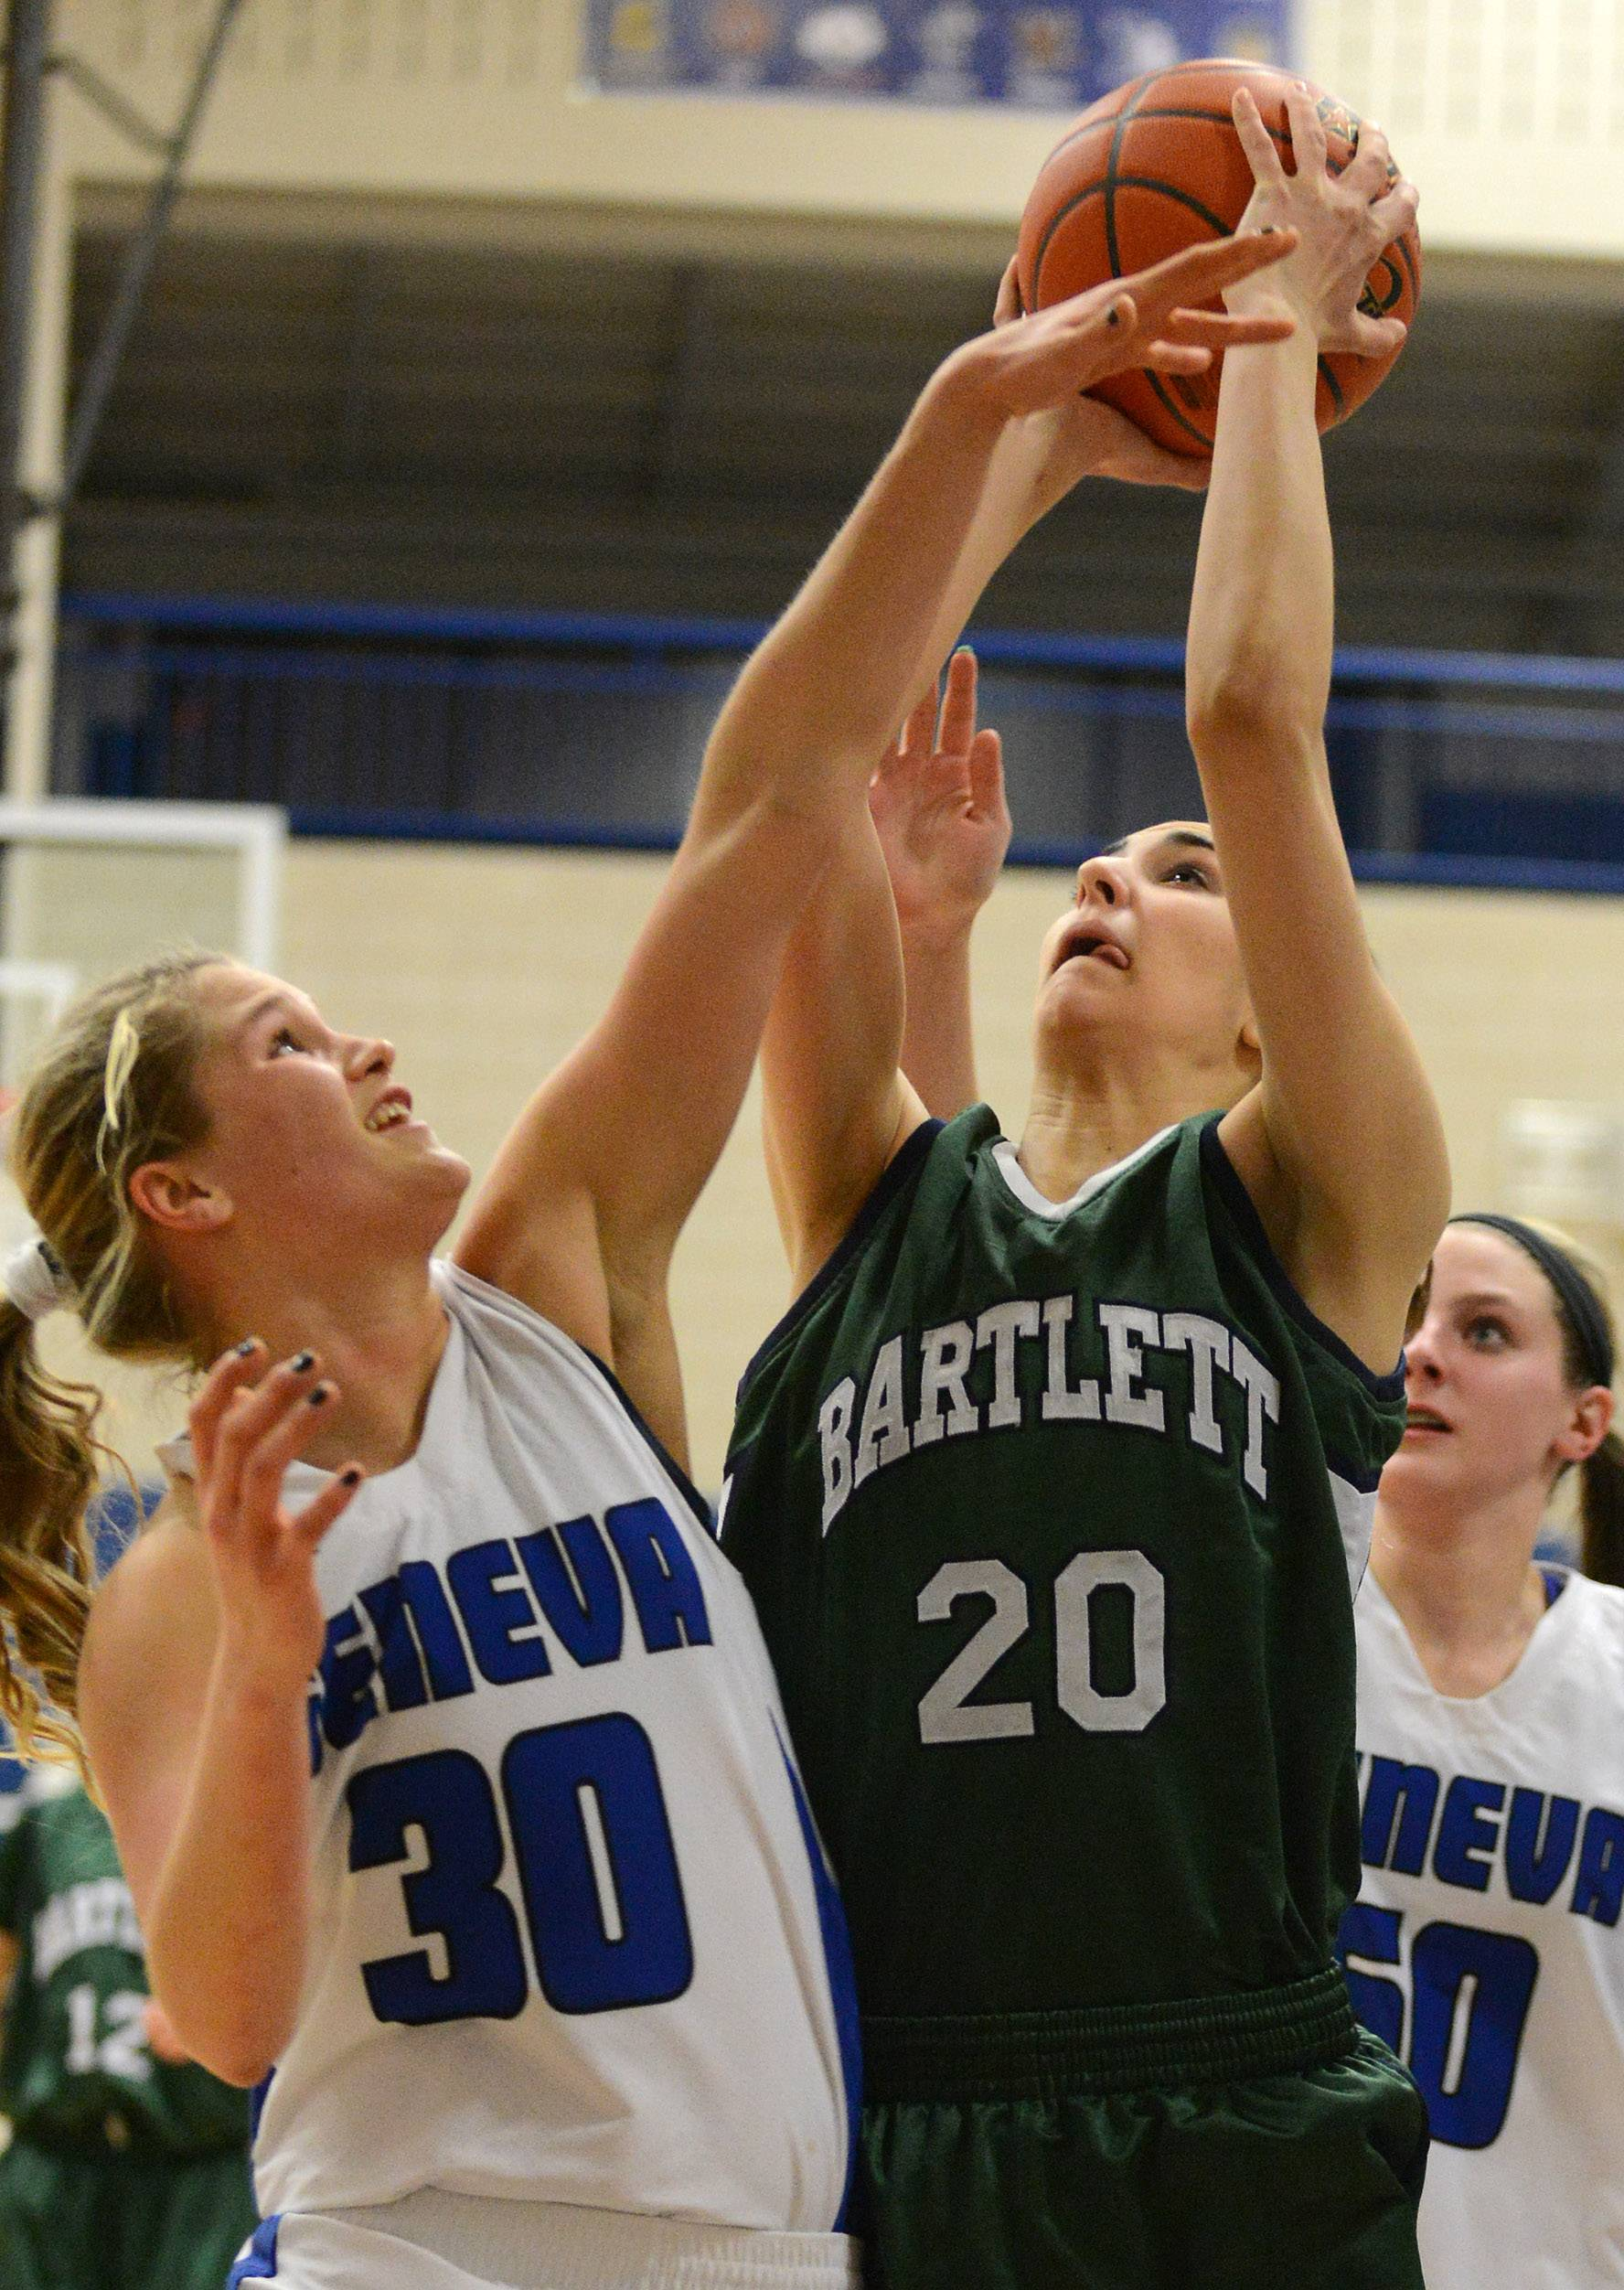 Bartlett's Elizabeth Arco (20) shoots and scores despite the defensive effort of Geneva's Janie McCloughan (30) during Thursday's game in Geneva.